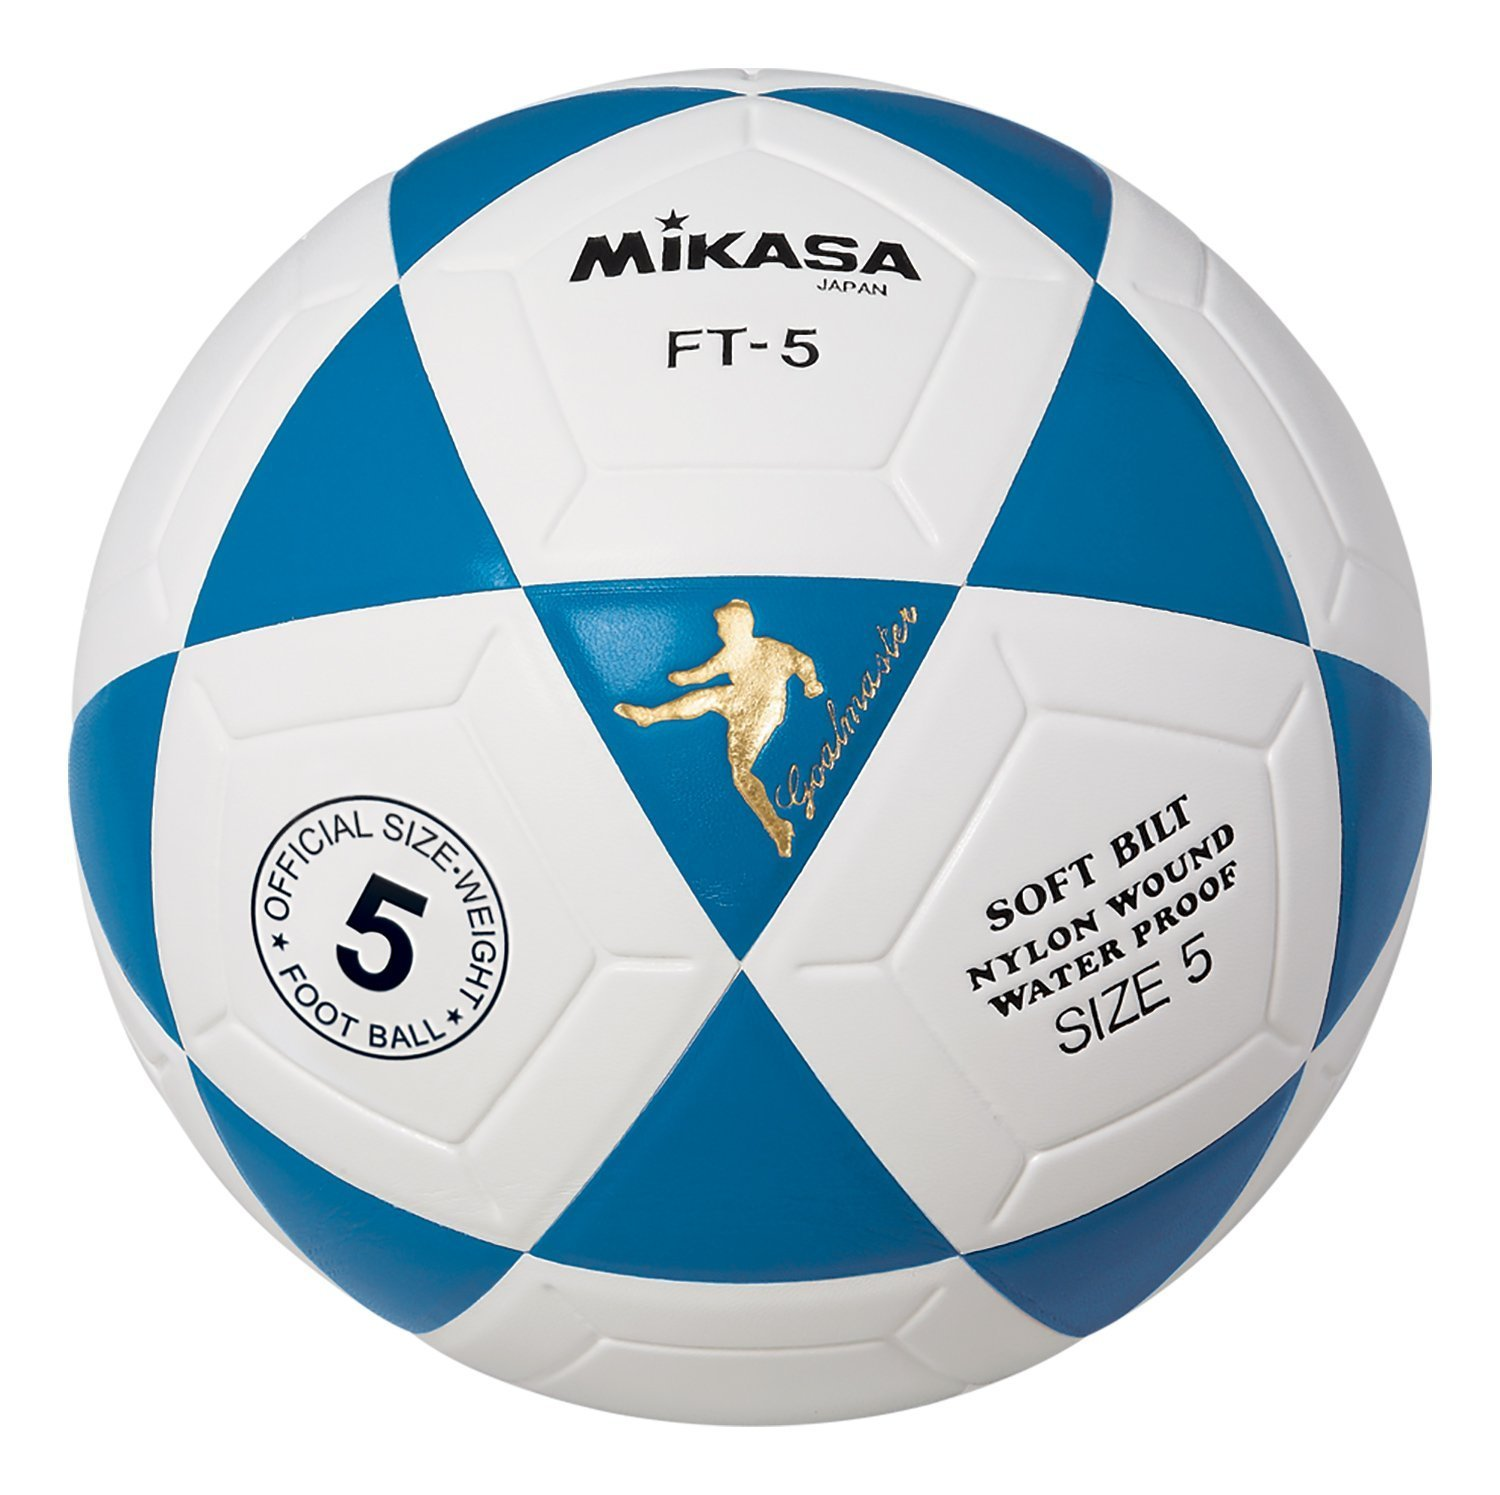 Mikasa FT5 Goal Master Soccer Ball (Blue White, Size 5), New Mikasa FT5 Goal Master Soccer Ball (Blue White,... by